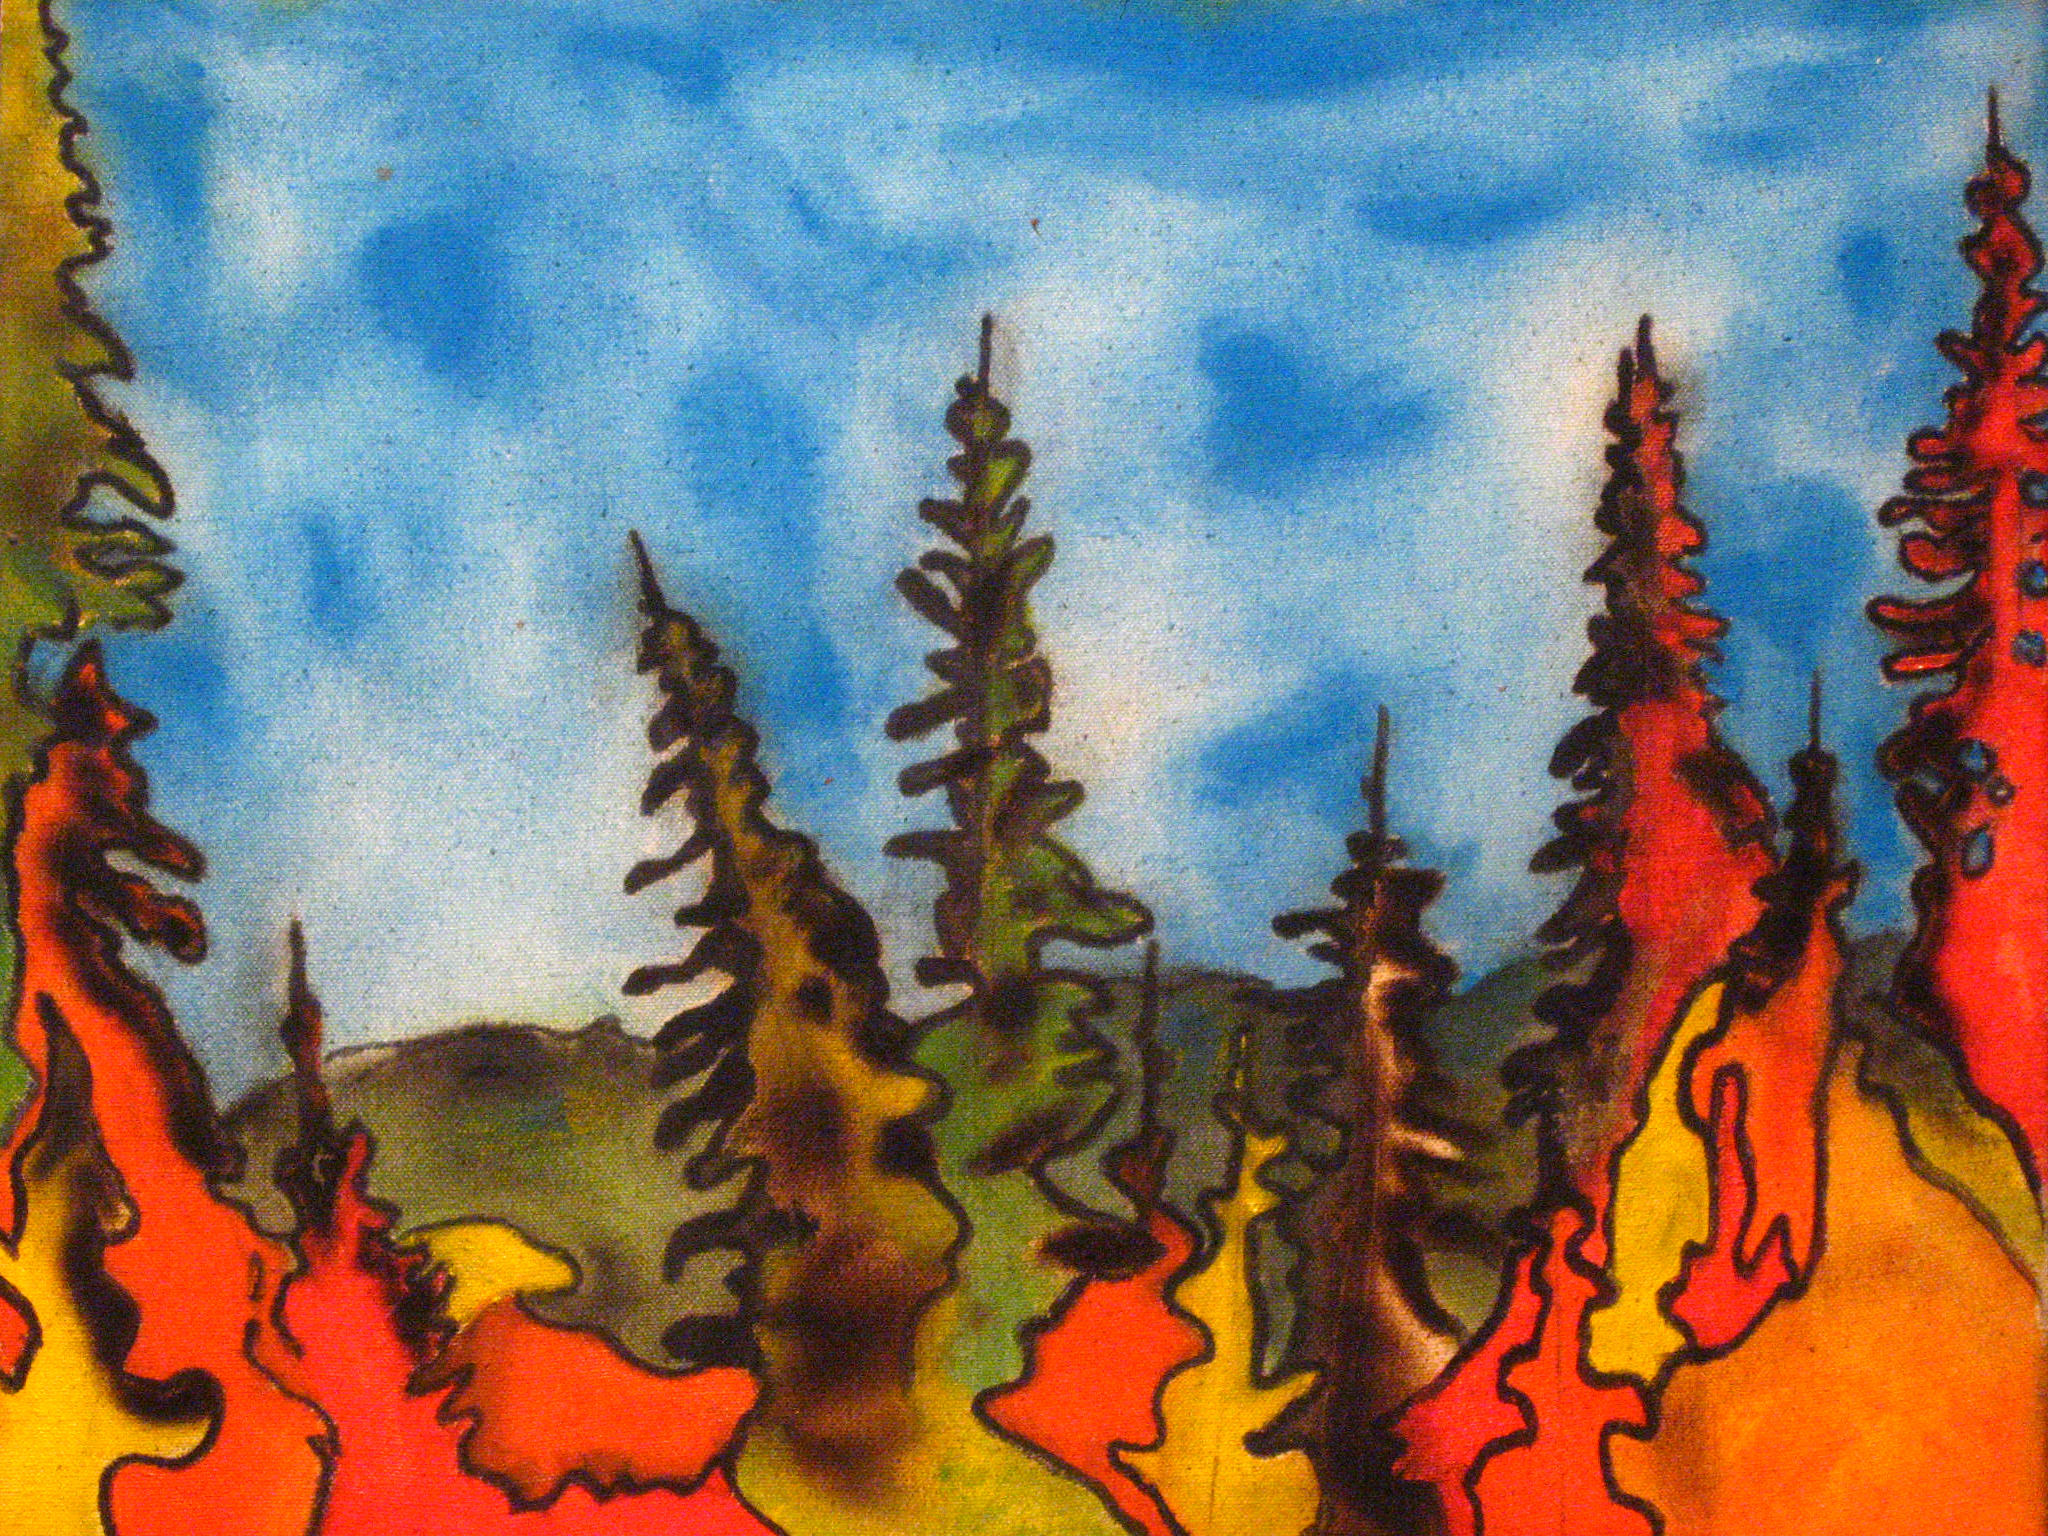 Algonquin Glowing Pines.jpg